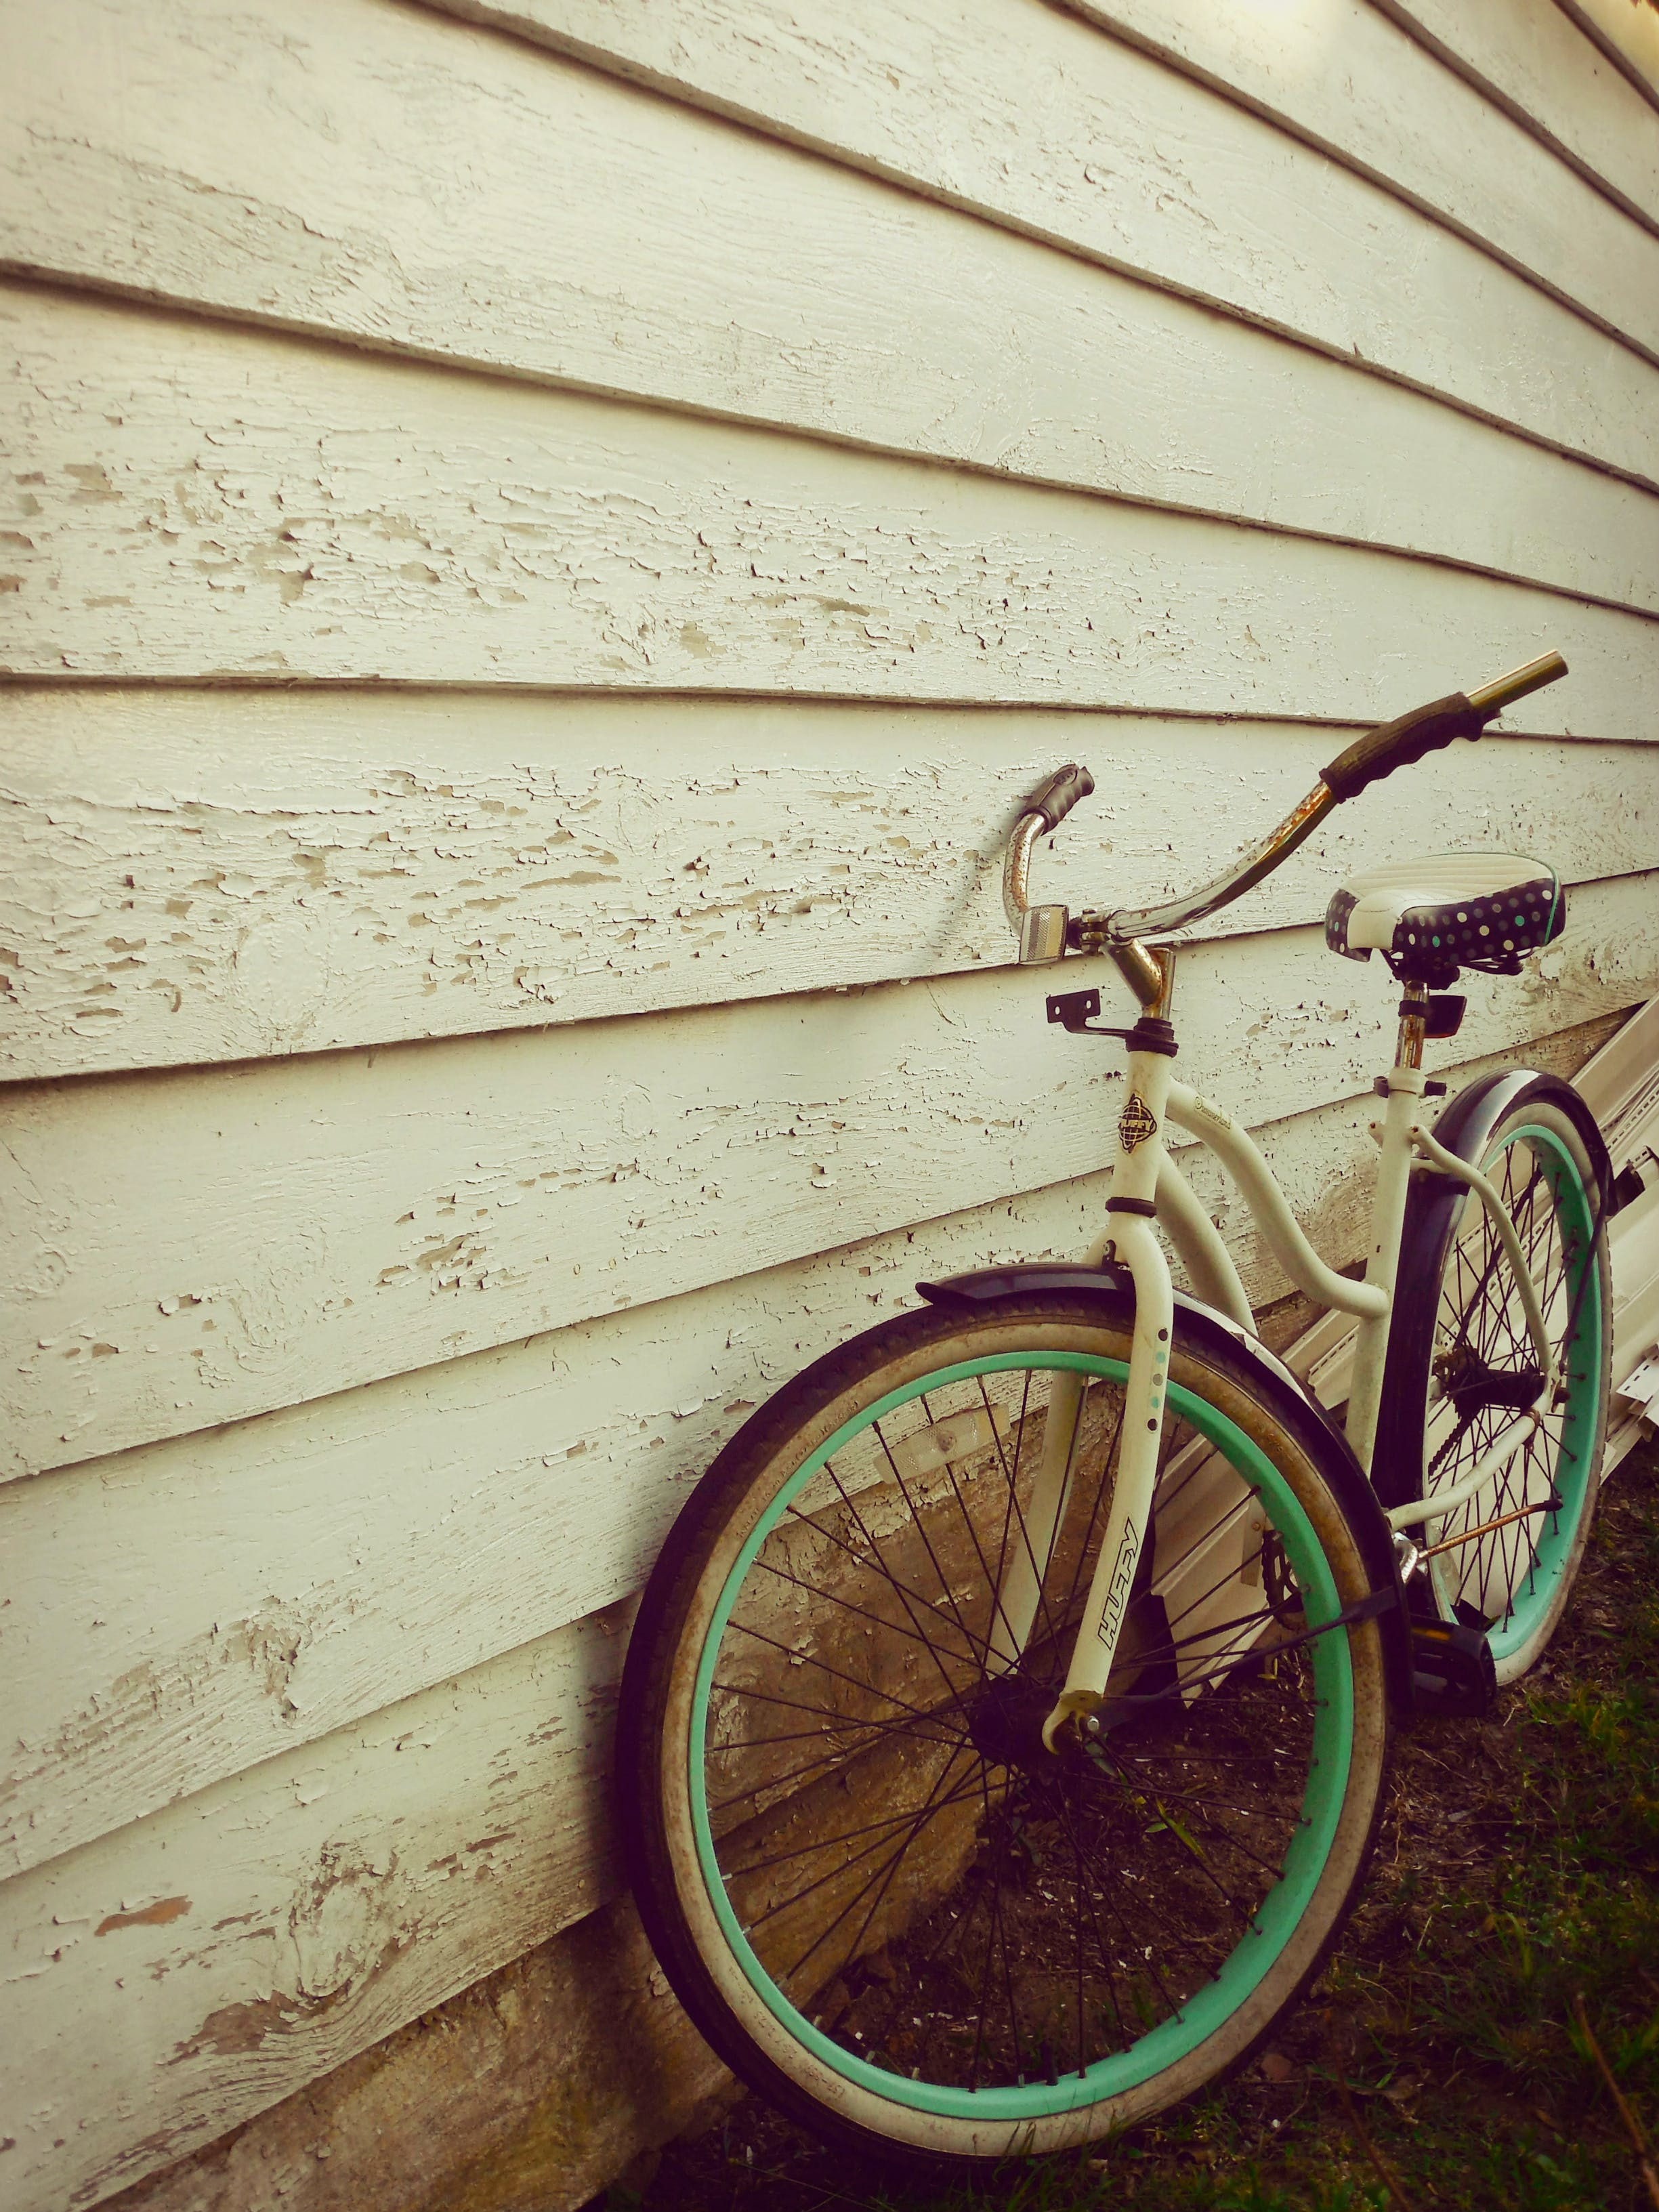 White and Teal Beach Cruiser Bike Beside White Painted Wooden Wall